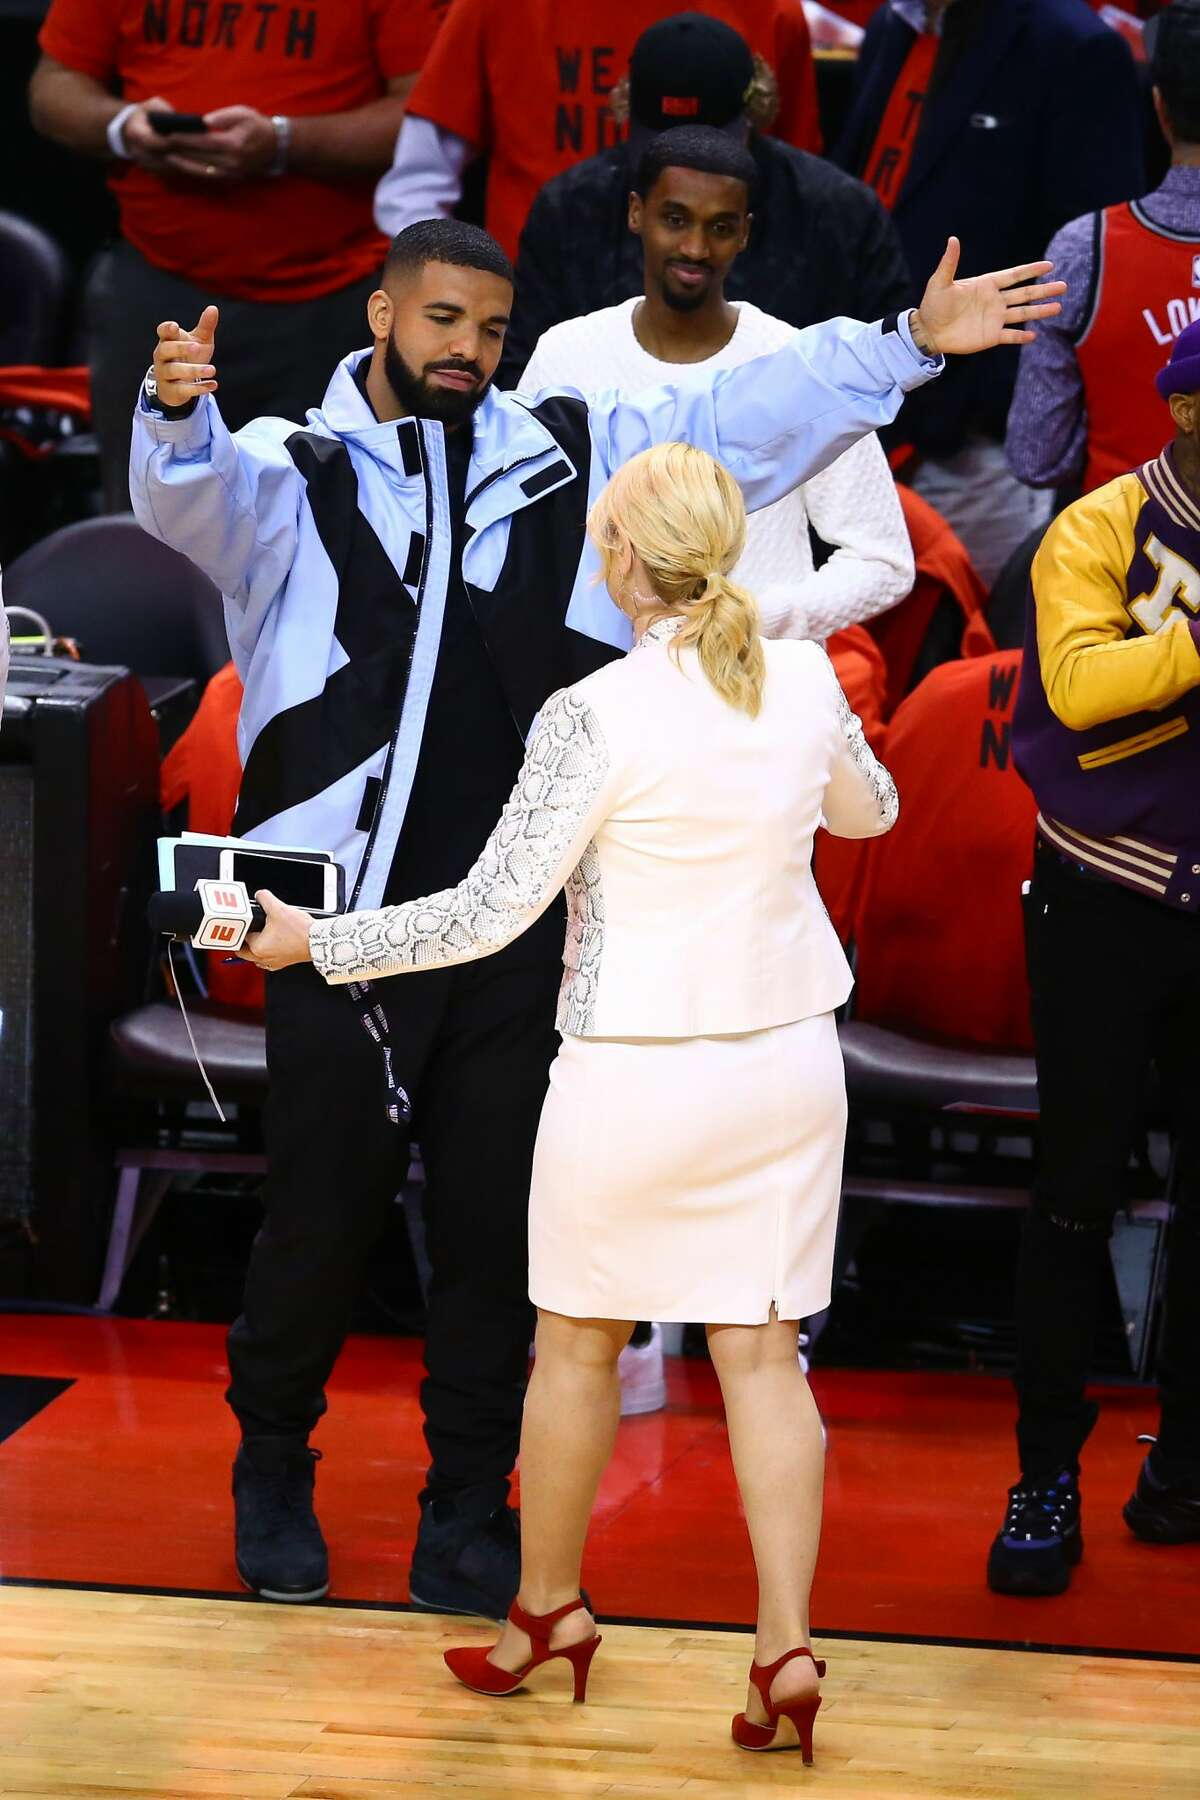 Rapper Drake speaks to TV personality Doris Burke before Game Five between the Toronto Raptors and the Golden State Warriors of the 2019 NBA Finals at Scotiabank Arena on June 10, 2019 in Toronto, Canada.